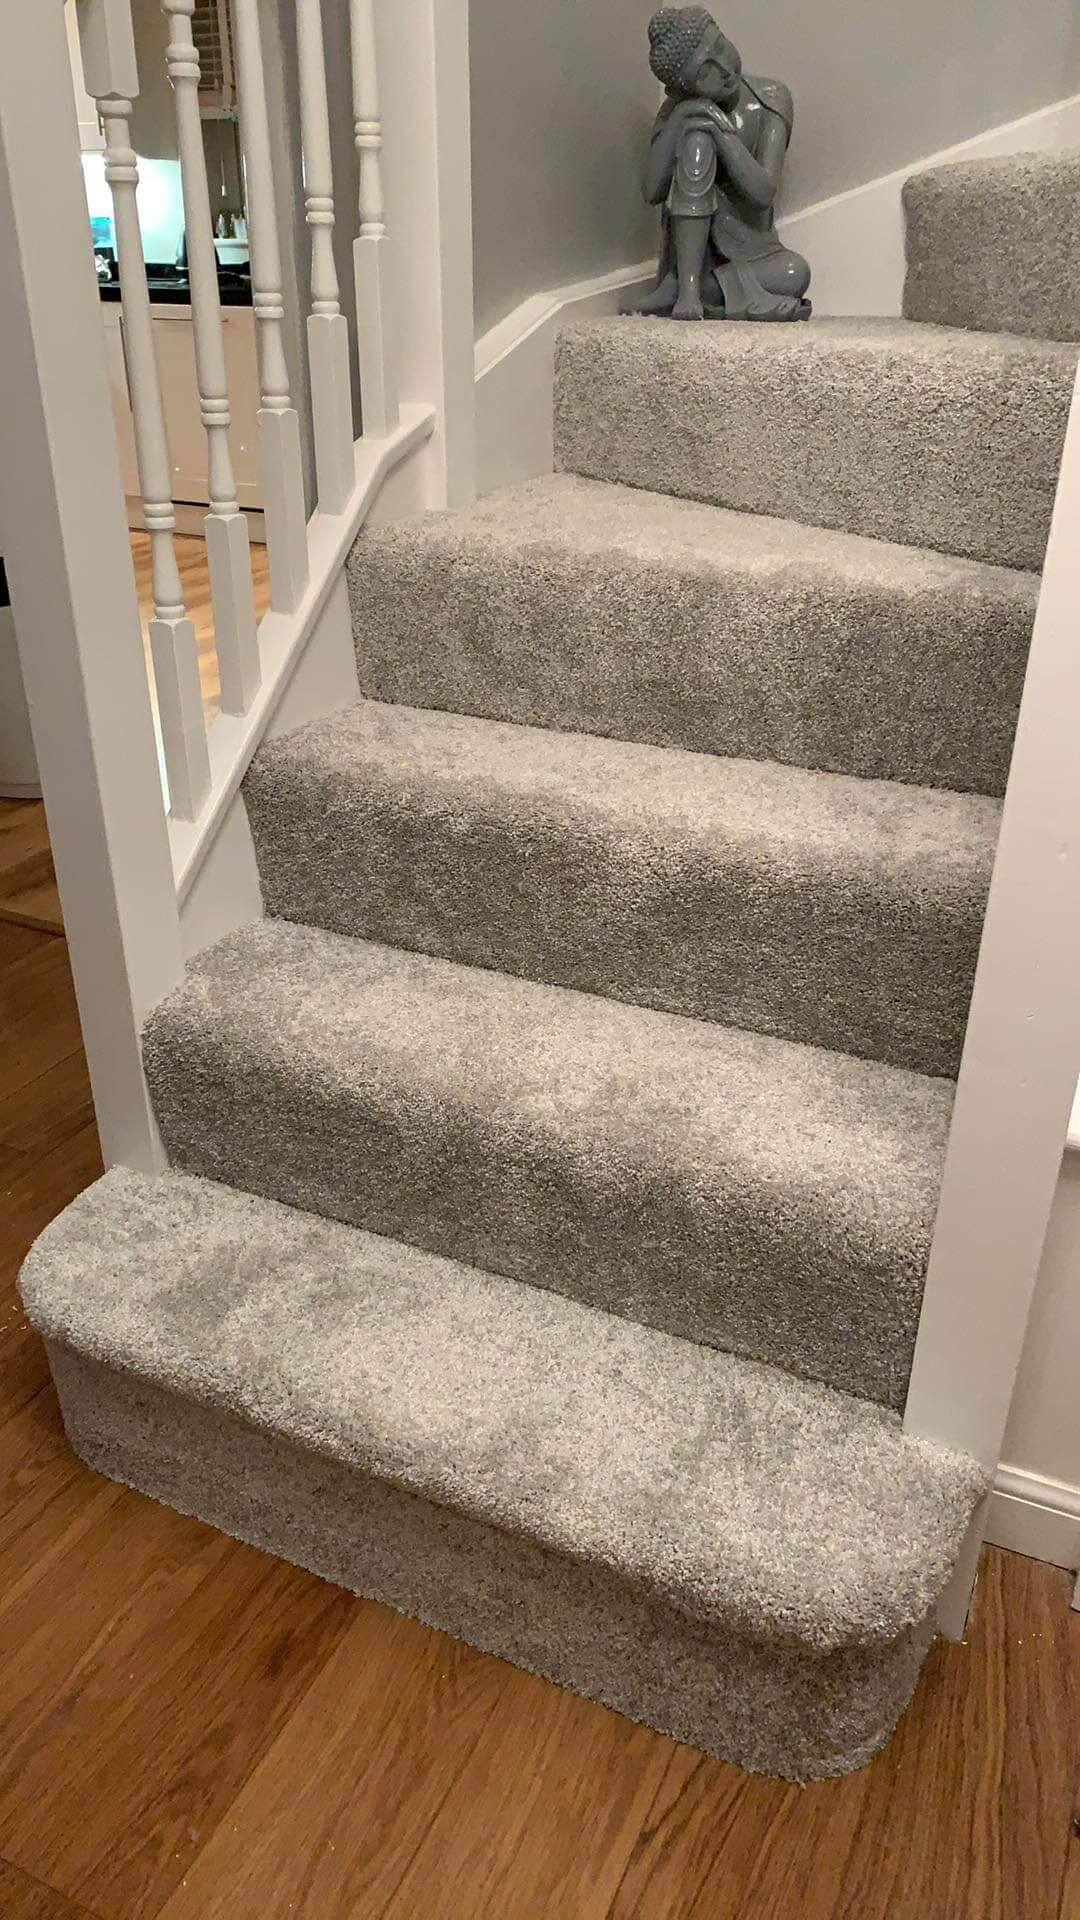 Carpet fitting on Stairs